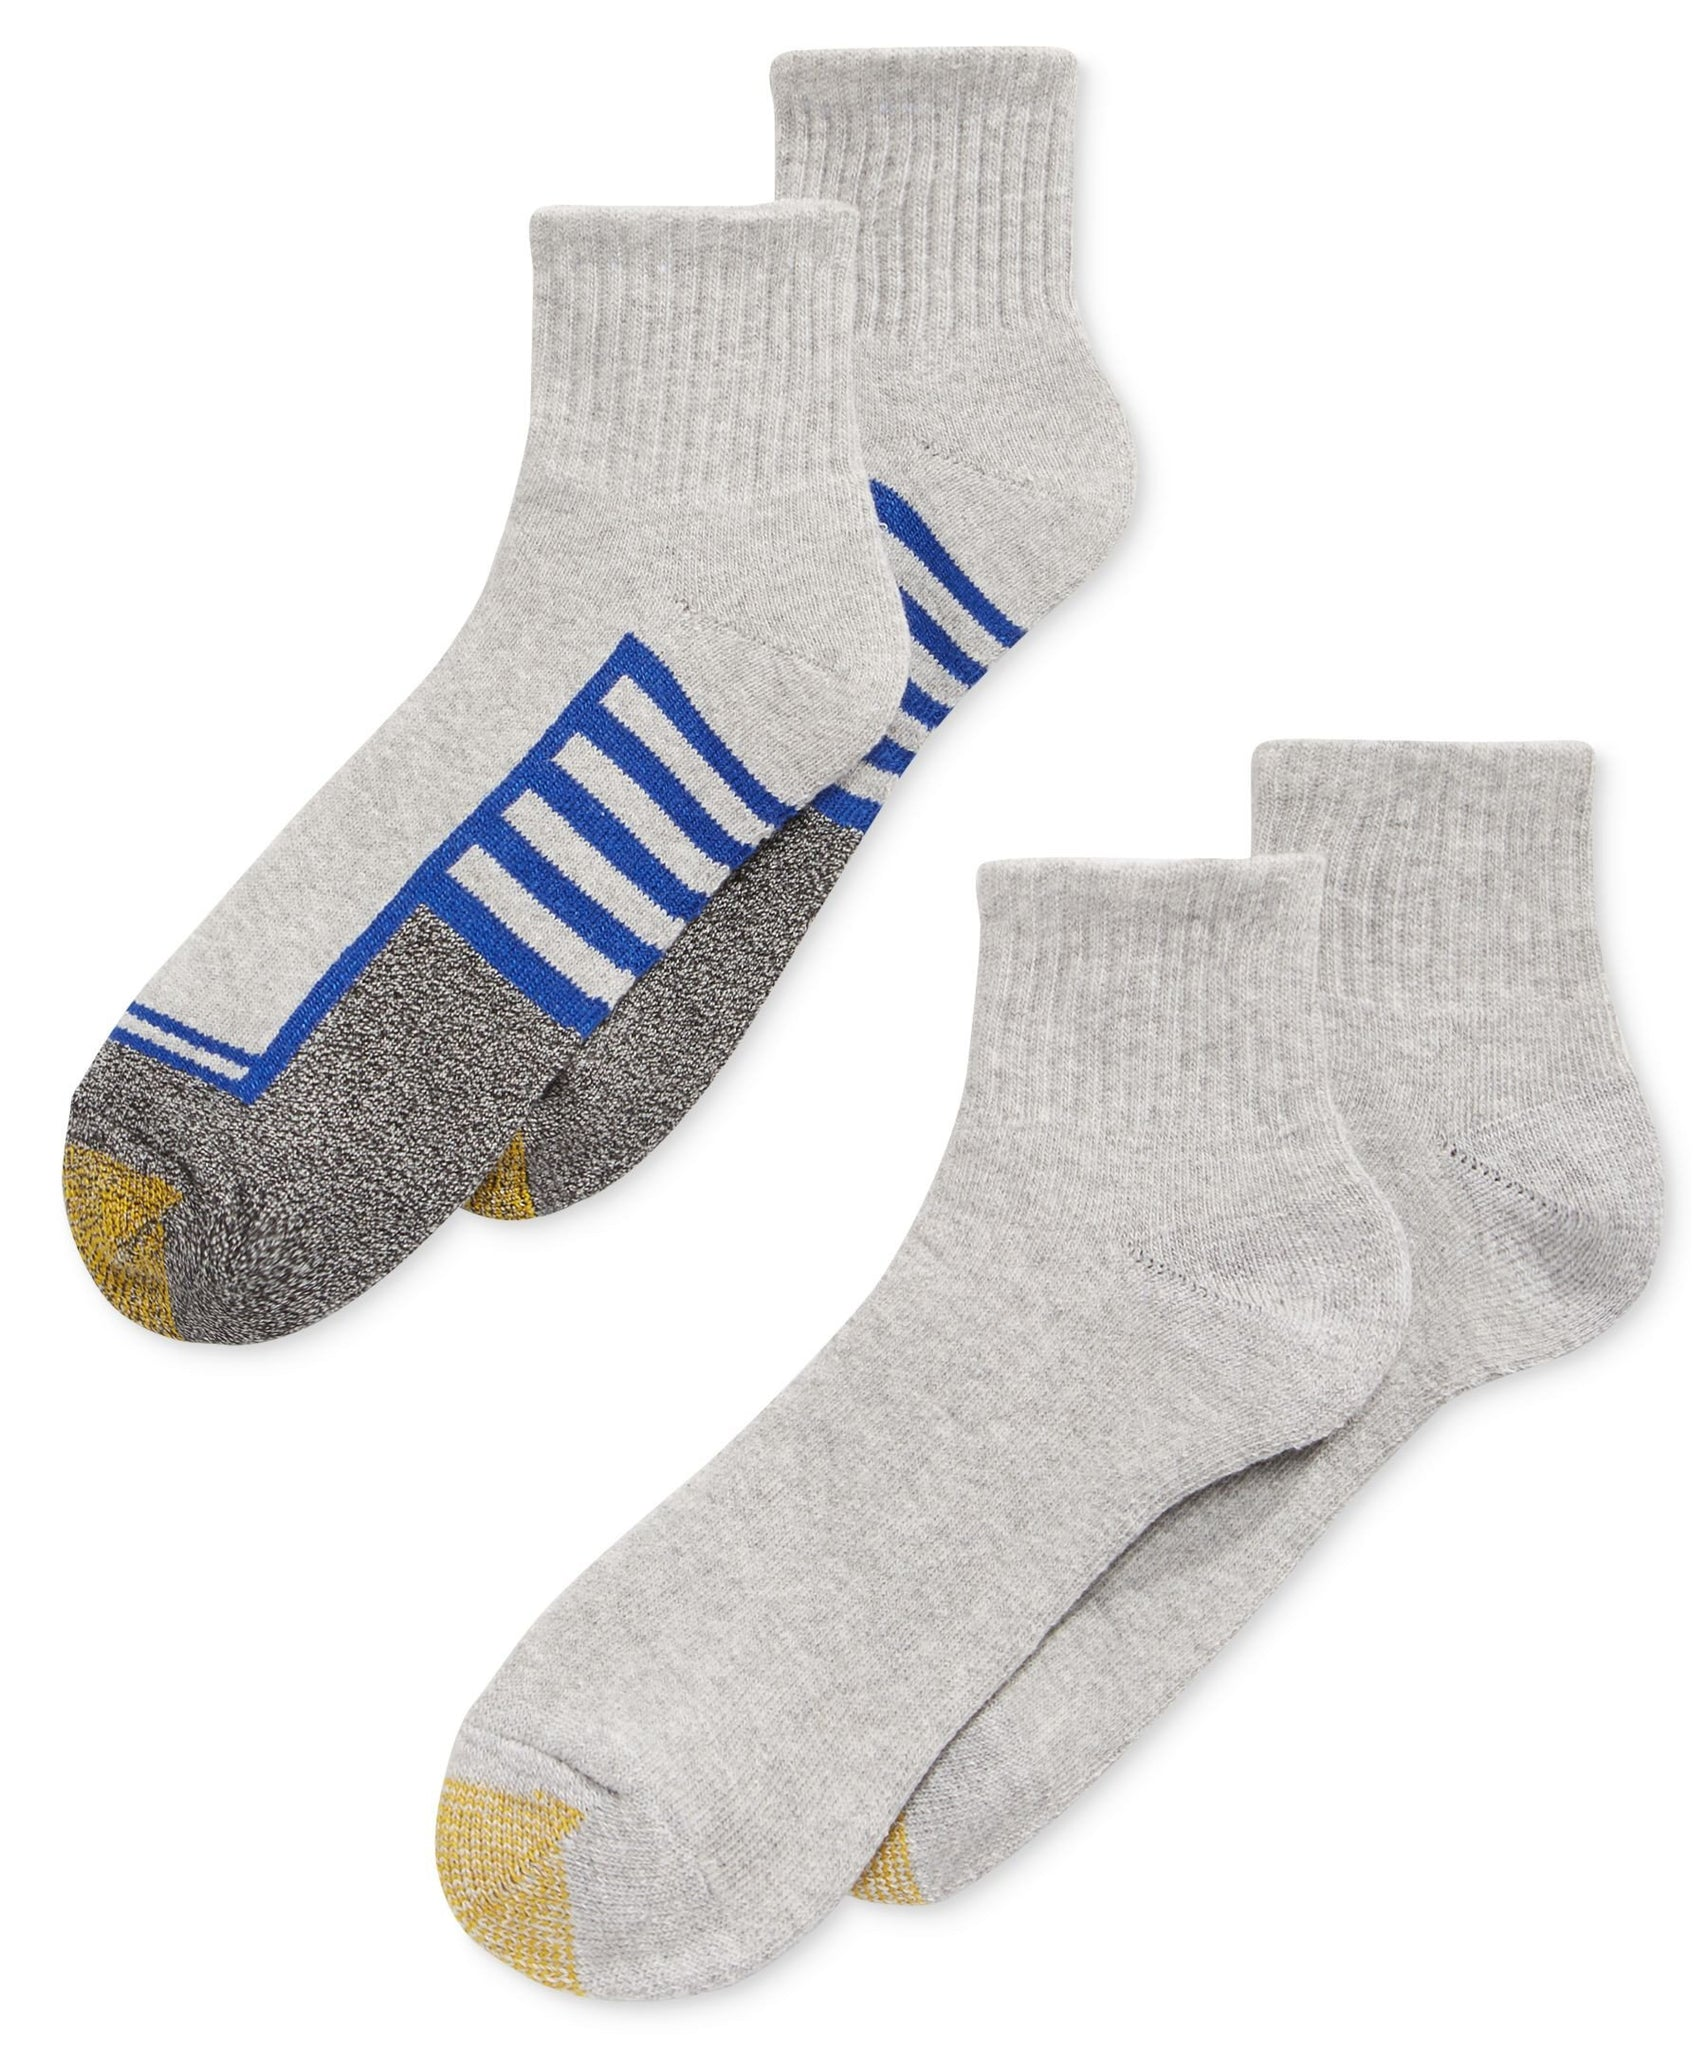 Gold Toe Socks Athletic Cushion Quarter 4 Pack